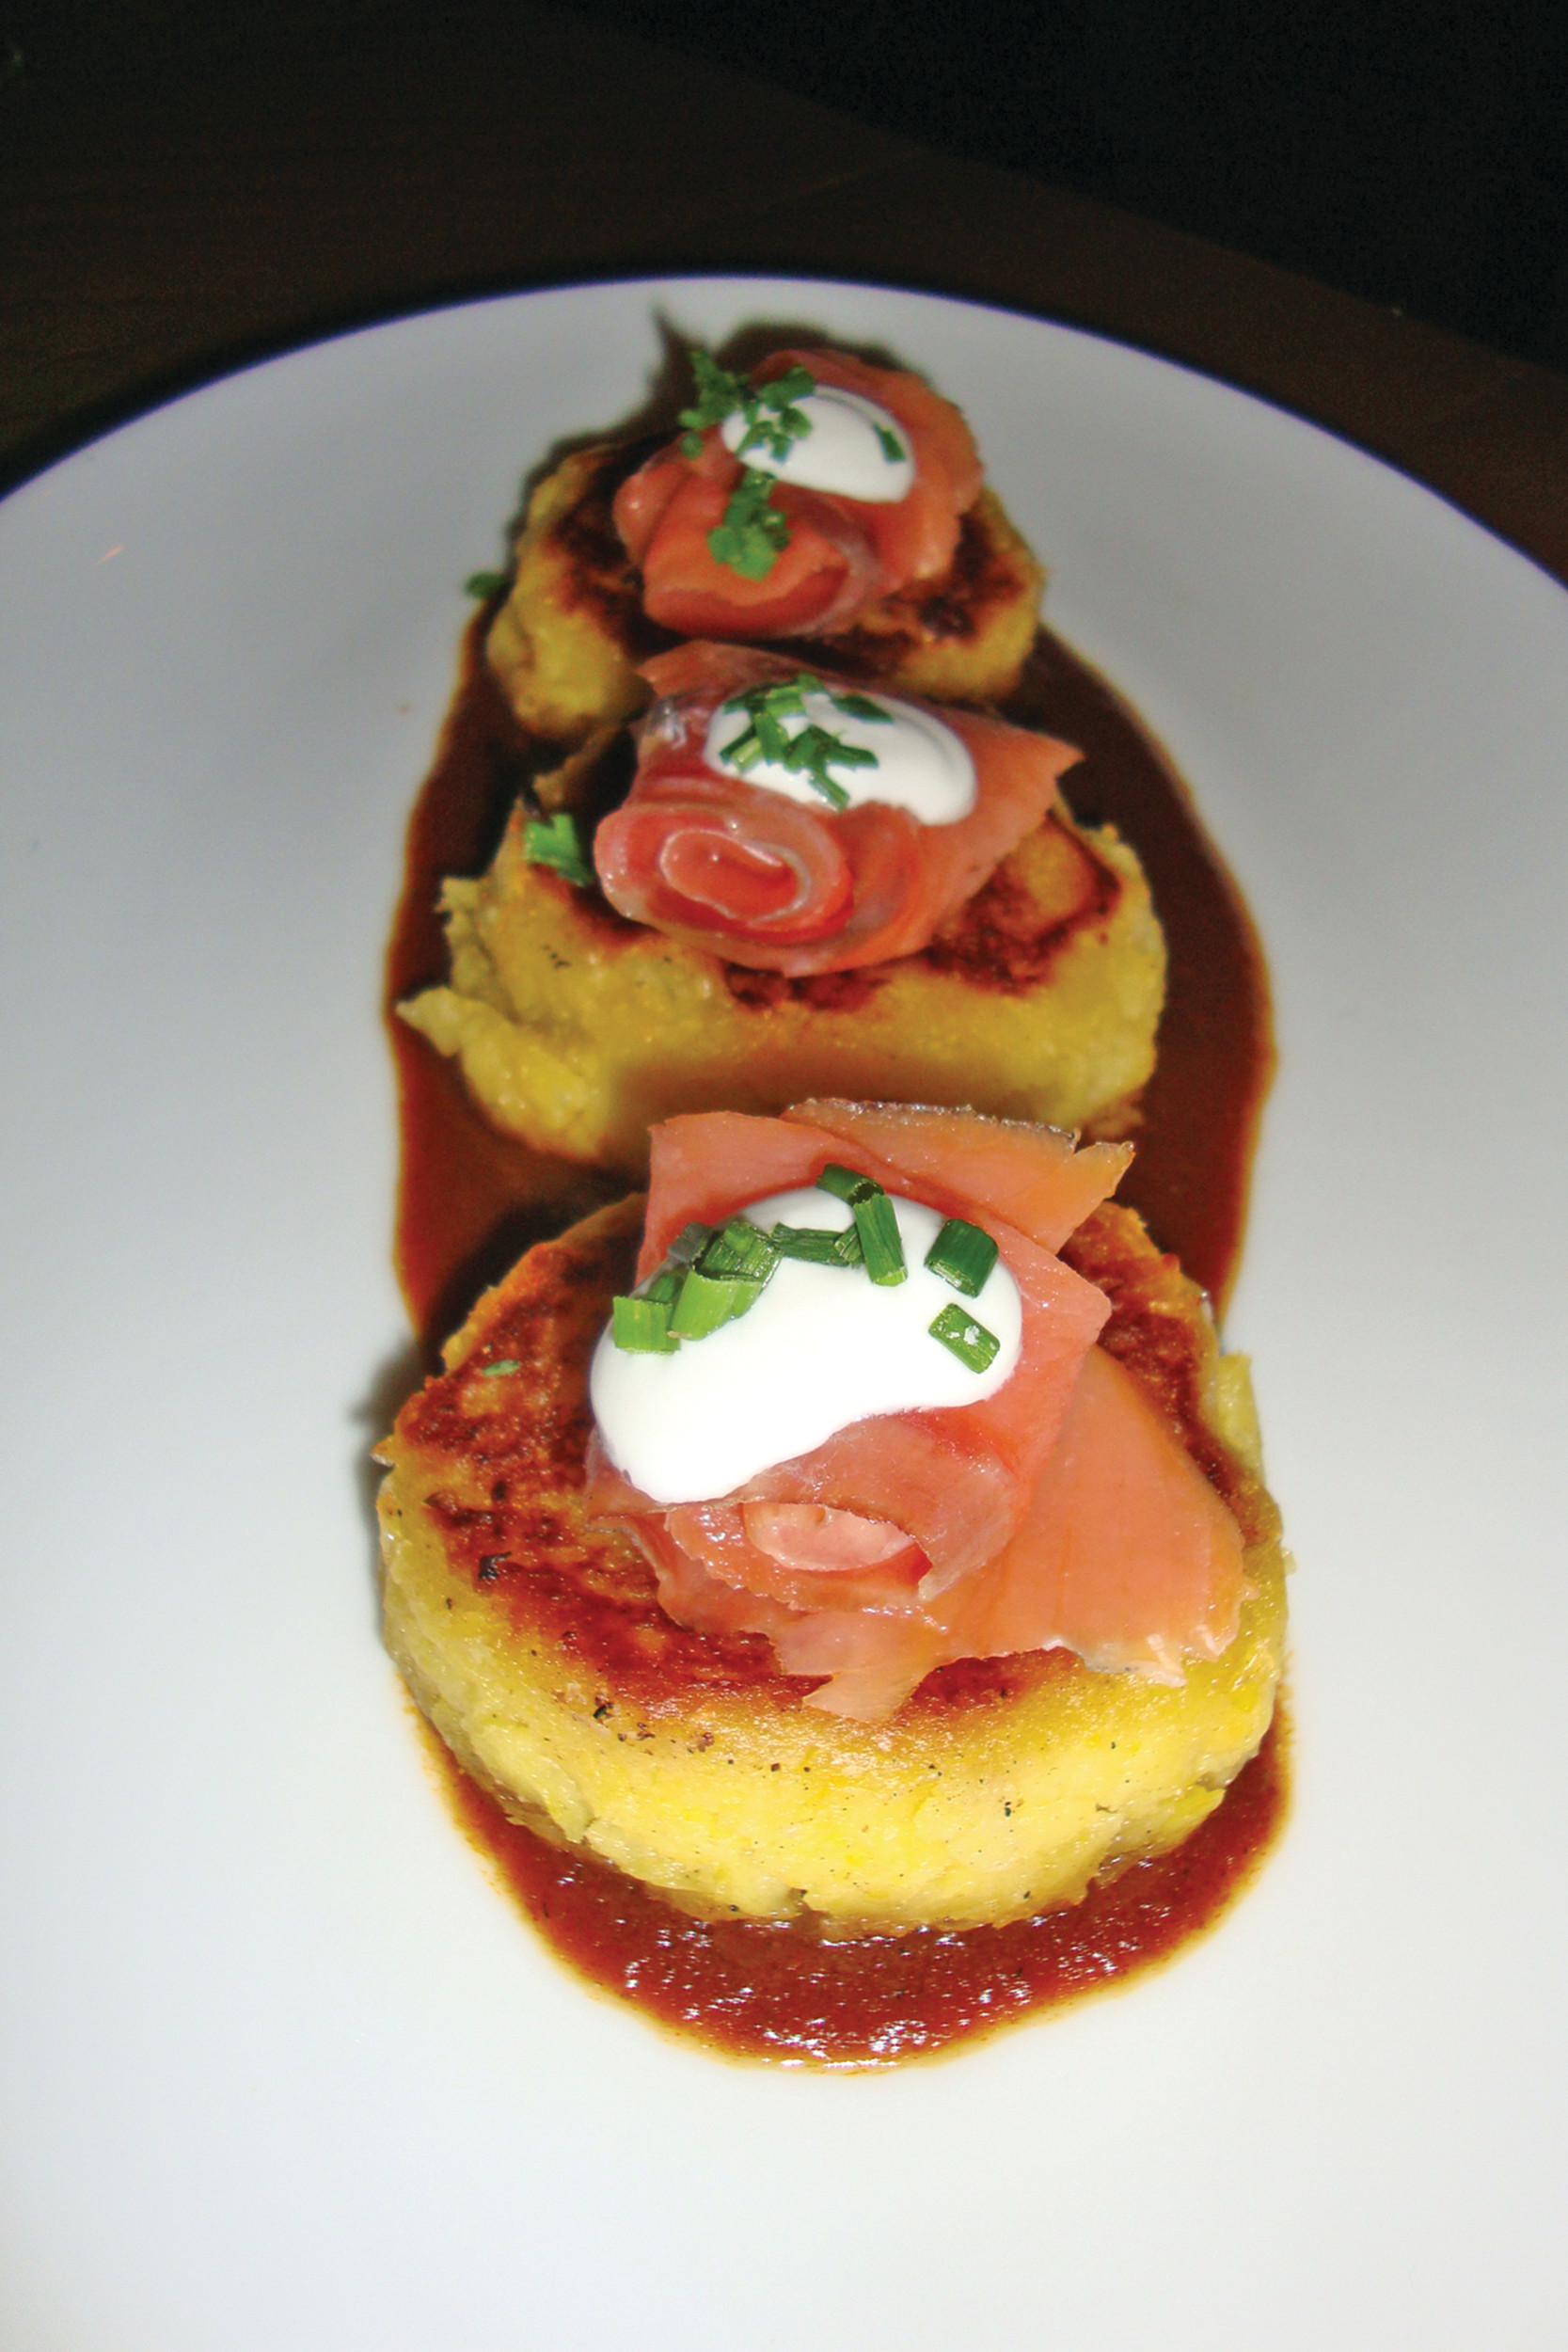 The trio of tamale cakes topped with smoked salmon, house crema and scallions pairs nicely with the accompanying ancho chile sauce.